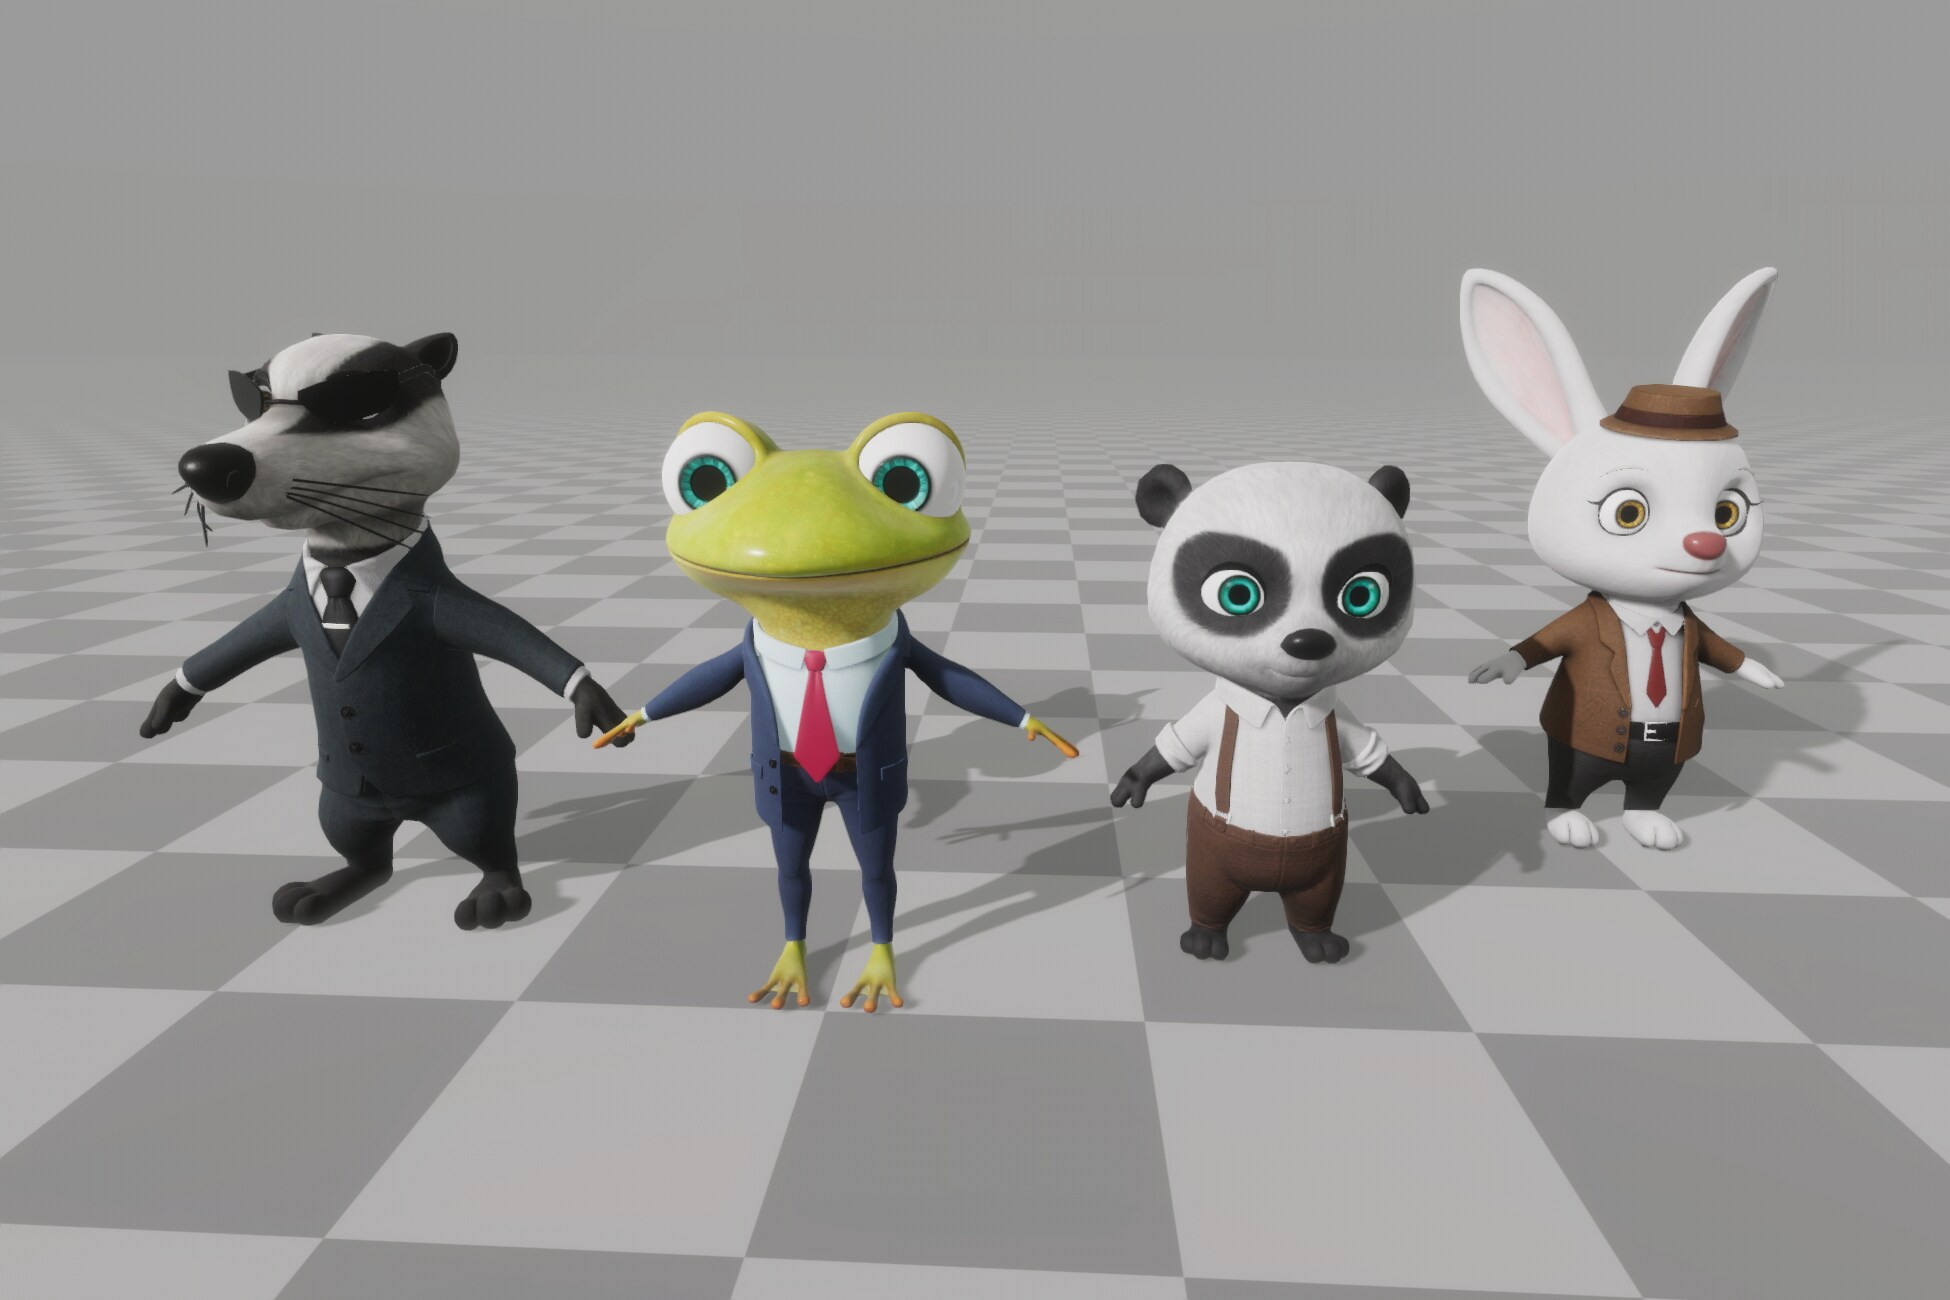 badger, a bullfrog, a bunny, and a bear in T-pose, standing side by side by side.